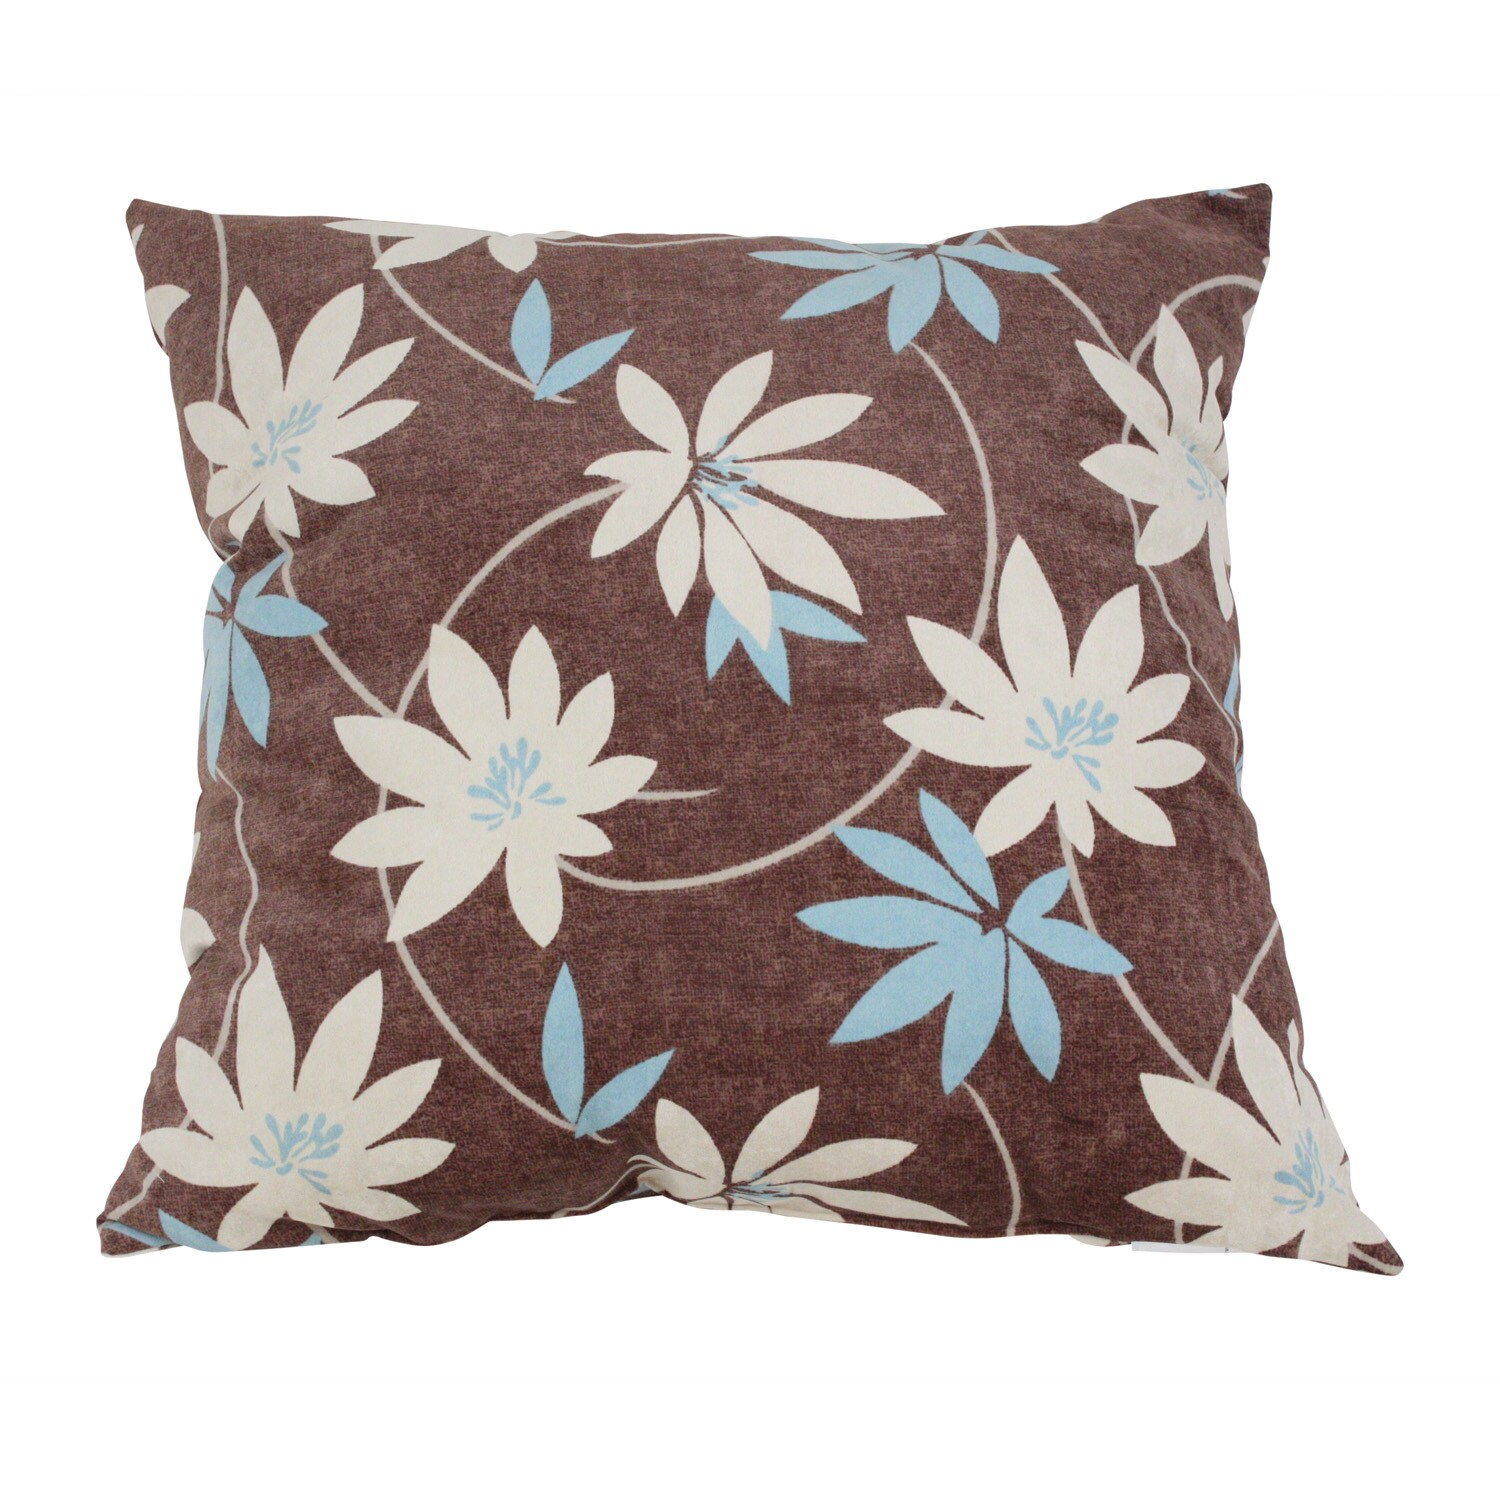 Pillow Perfect Brown Floral Flocked Polyester Throw Pillow